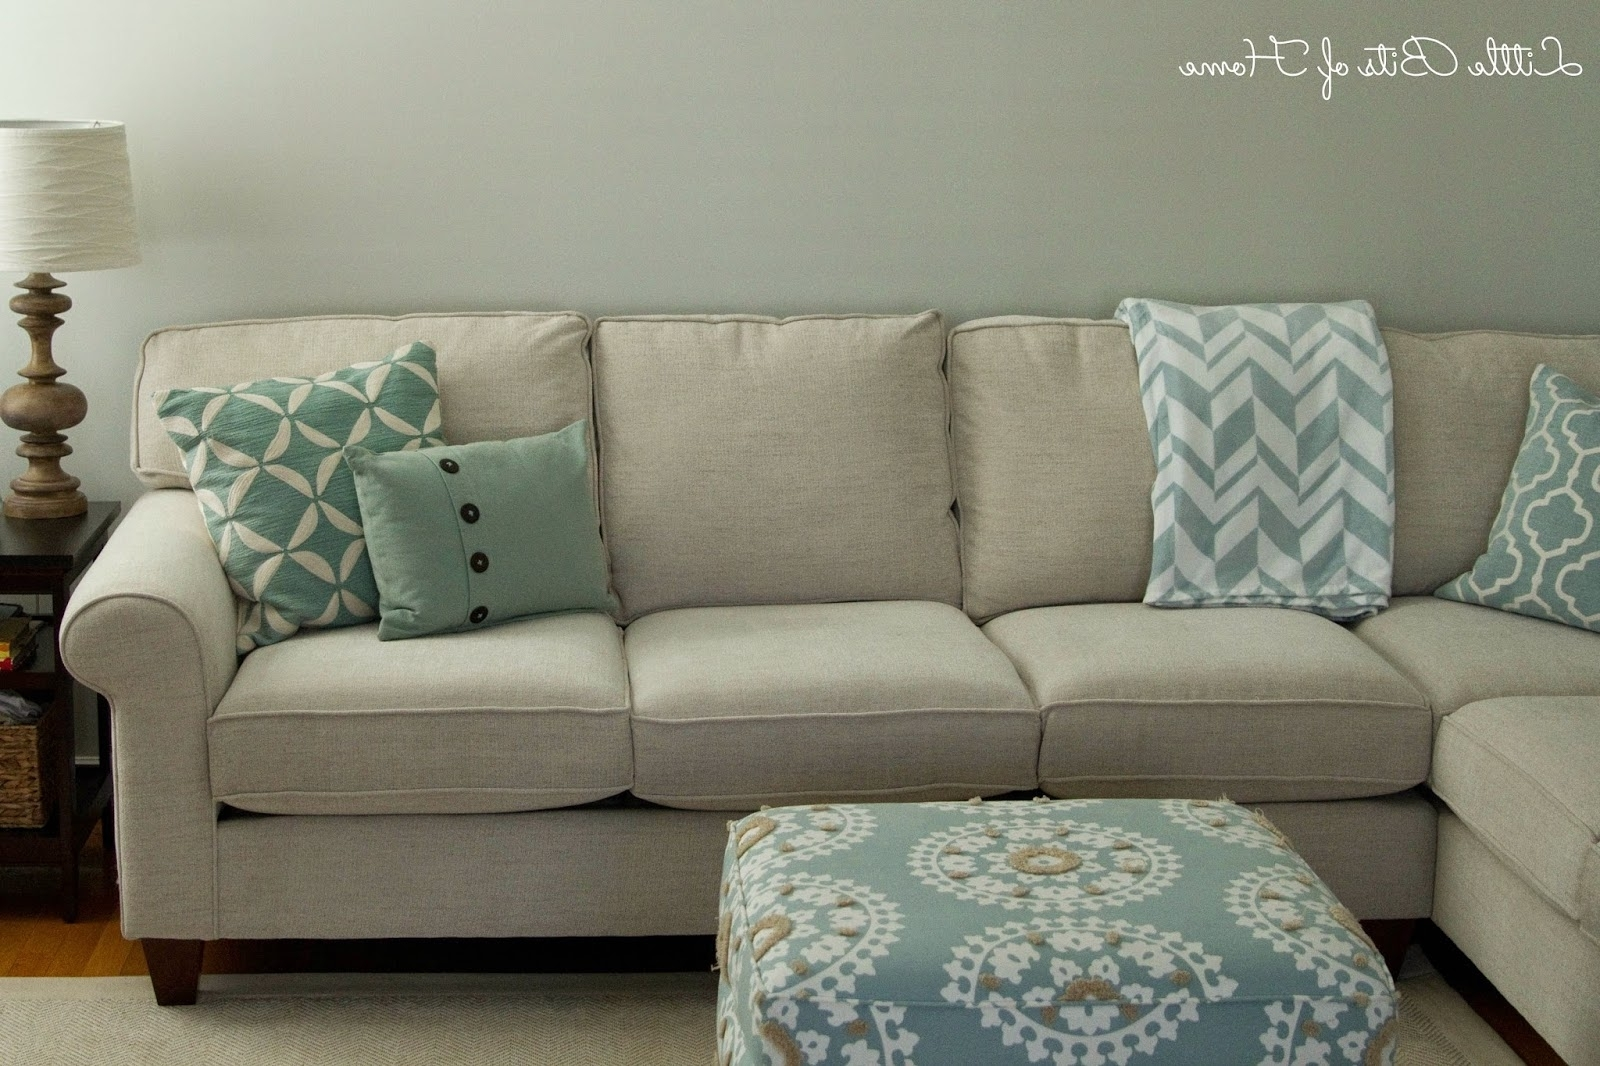 Living Room Makeover: Couch Redo Pertaining To Most Up To Date Sectional Sofas At Havertys (View 4 of 15)